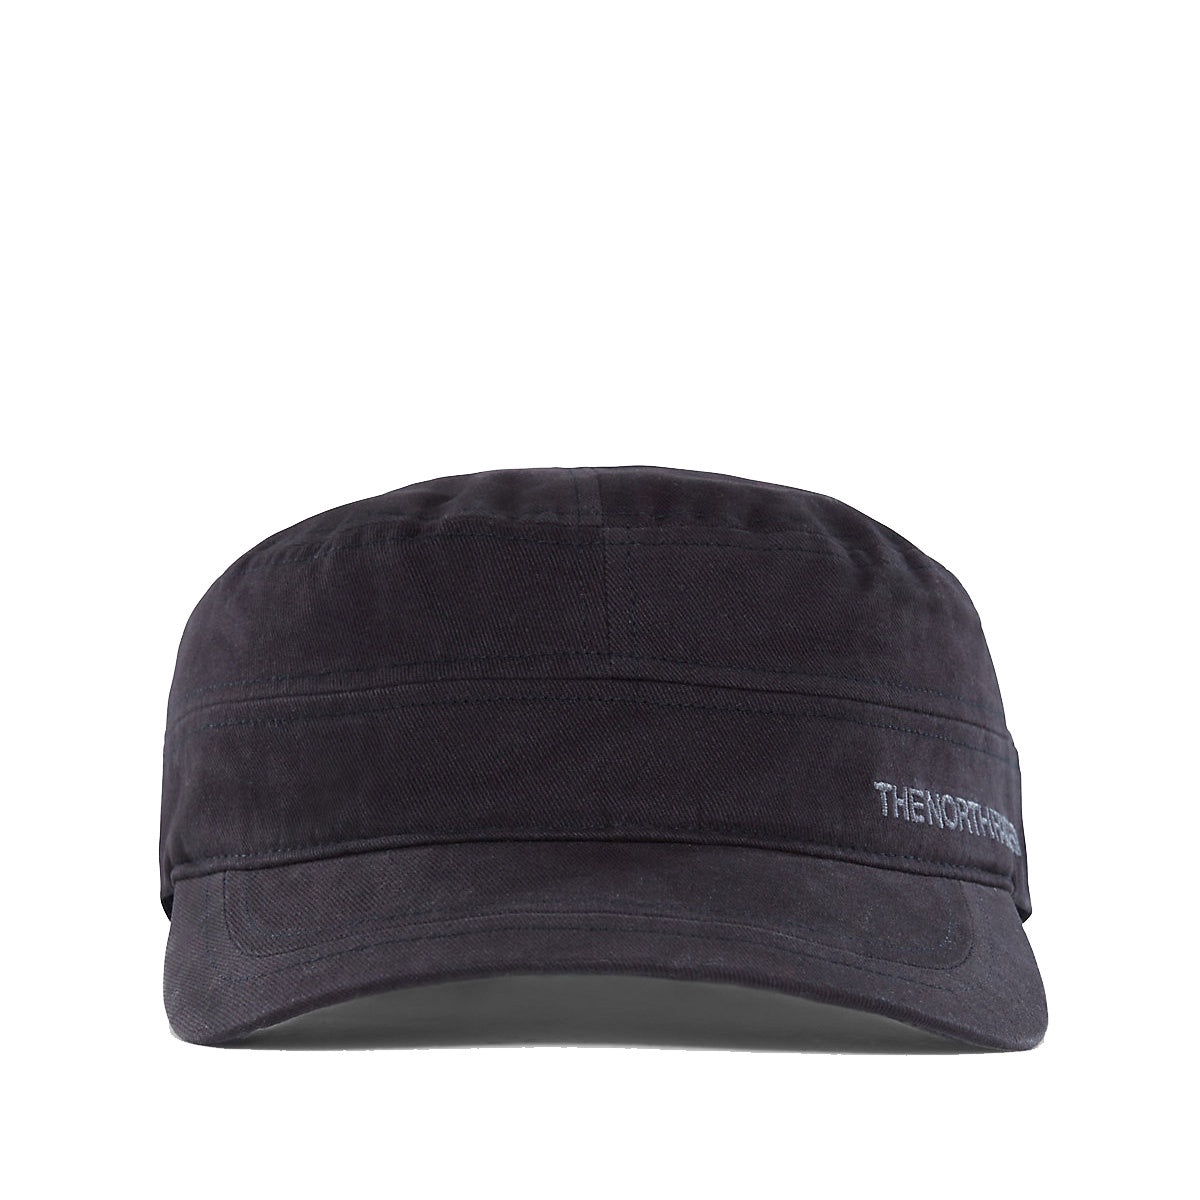 df75ed2a The North Face Logo Military Hat - Outdoor Sports